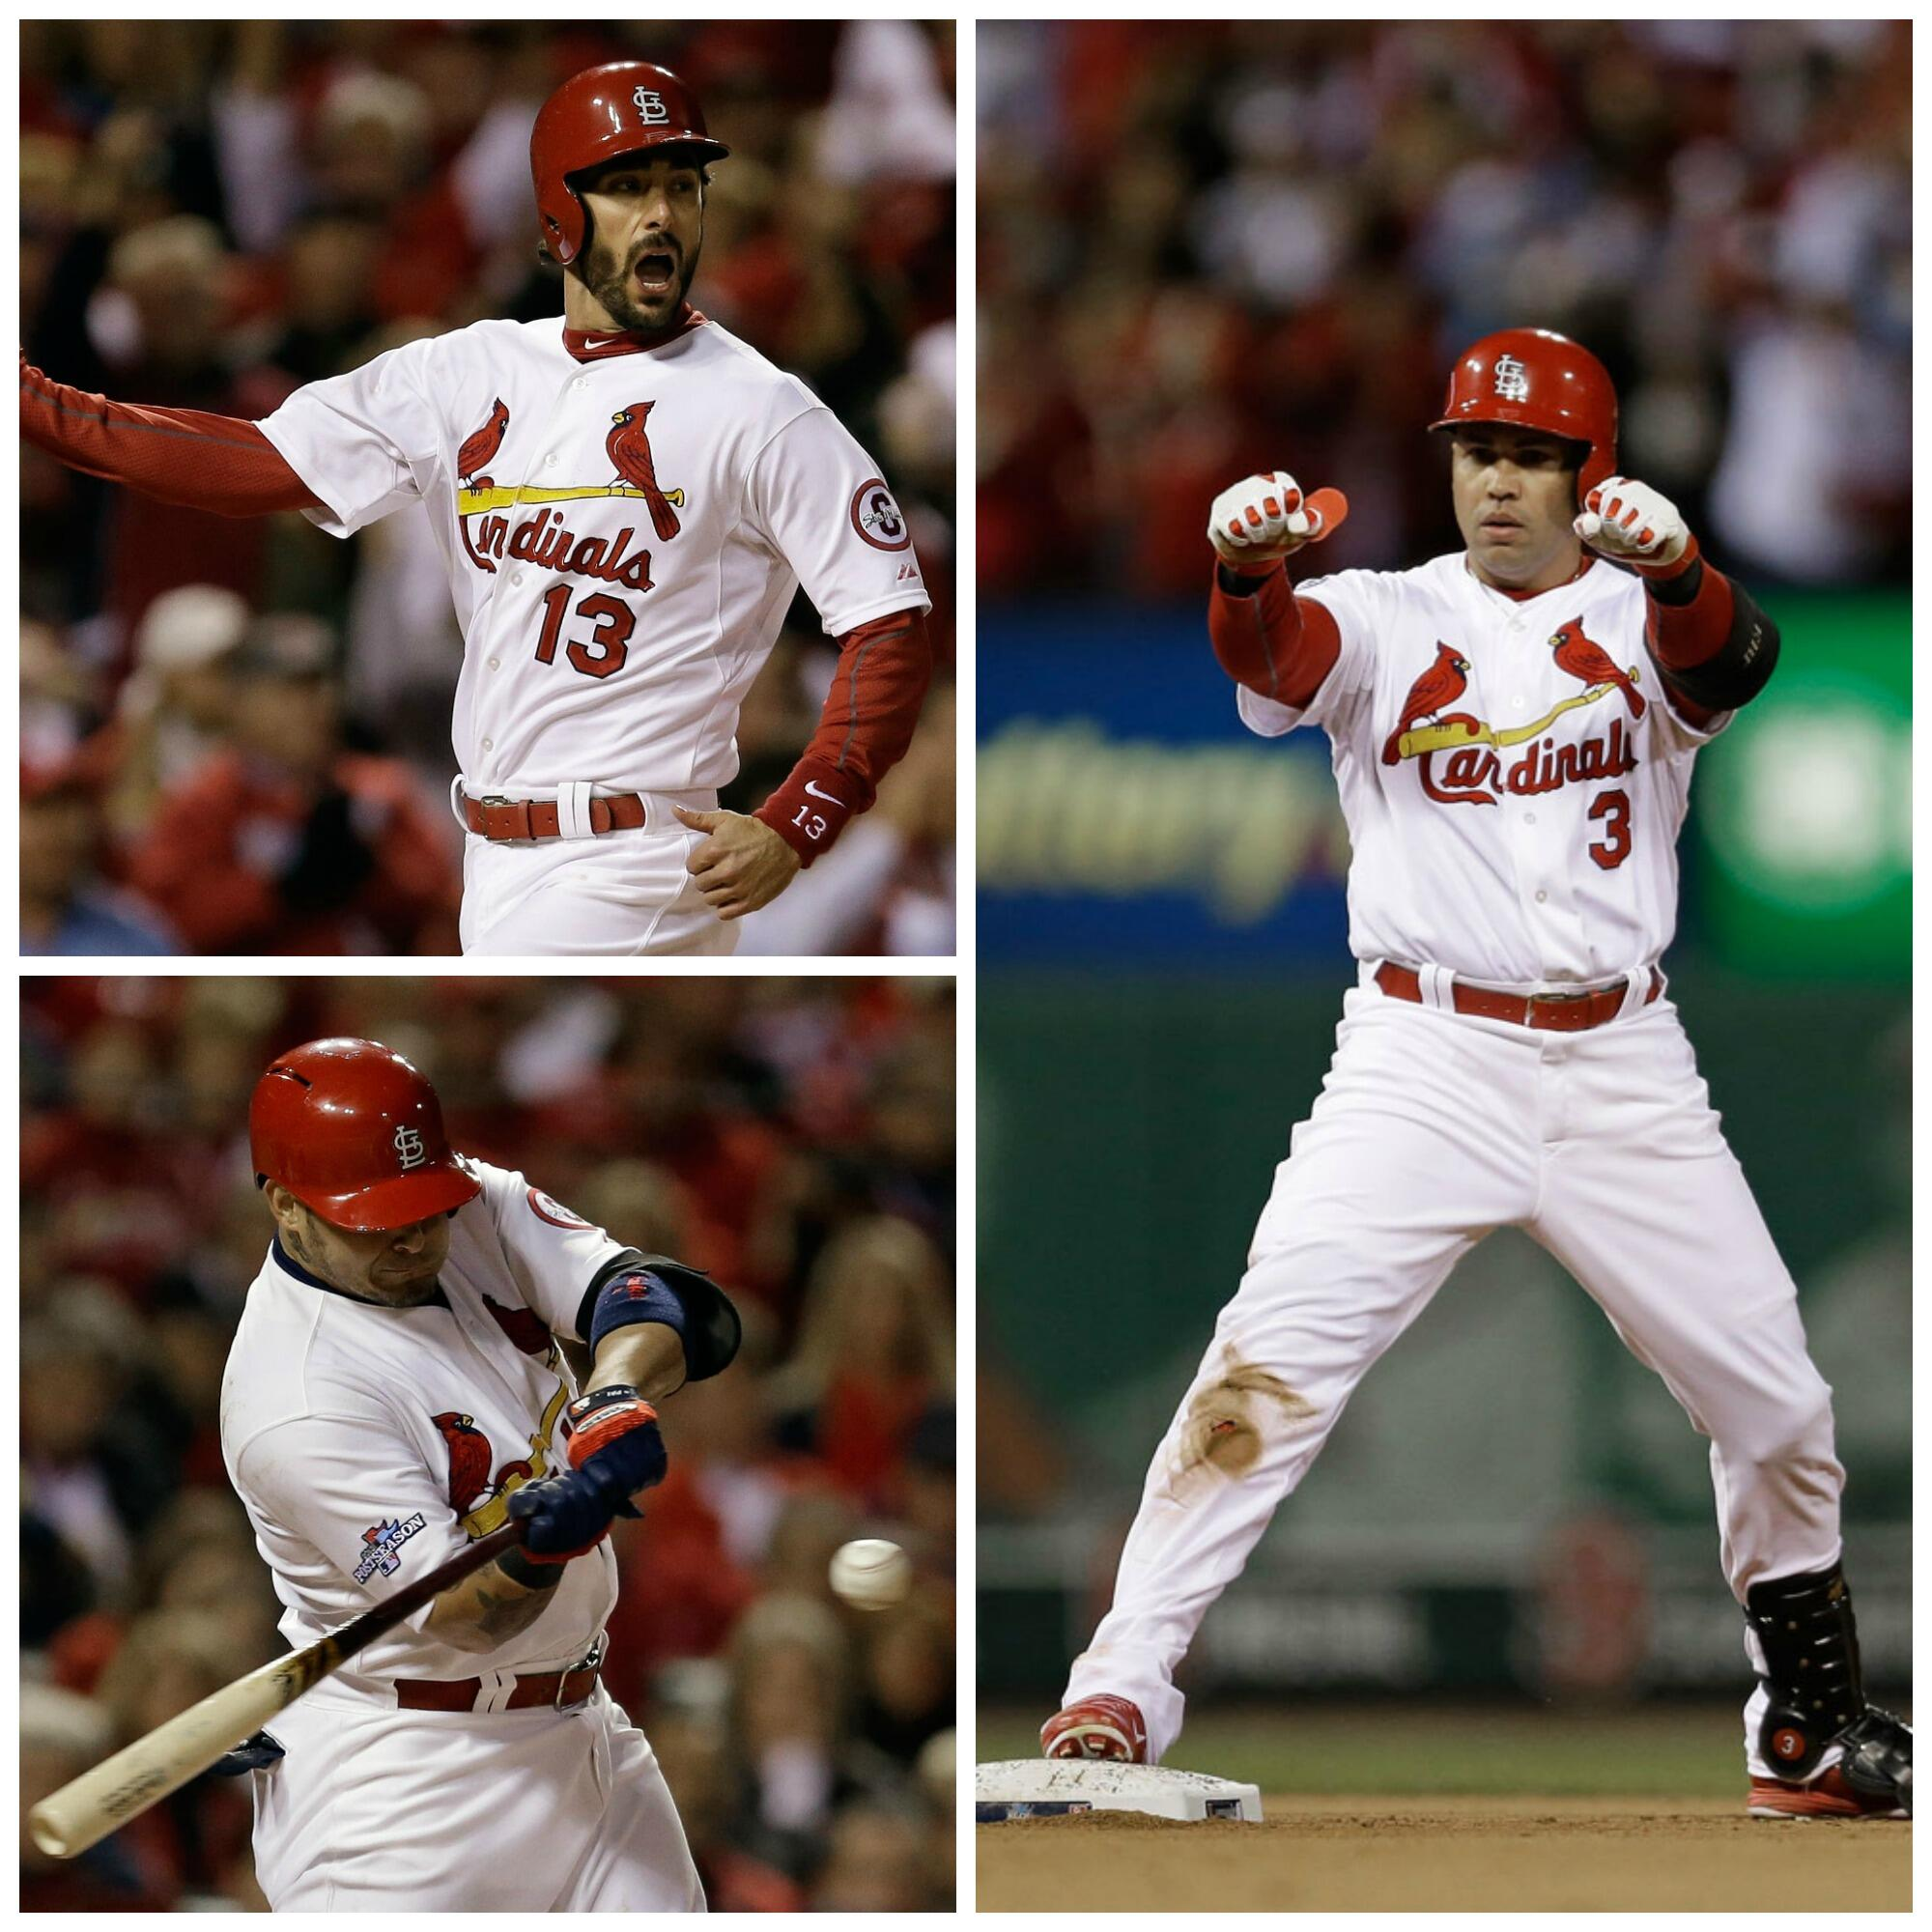 The @Cardinals tagged Clayton Kershaw for his first 4-run inning since July 2012. Yes, it was that long ago. #NLCS http://t.co/bnYrkh2Nhs